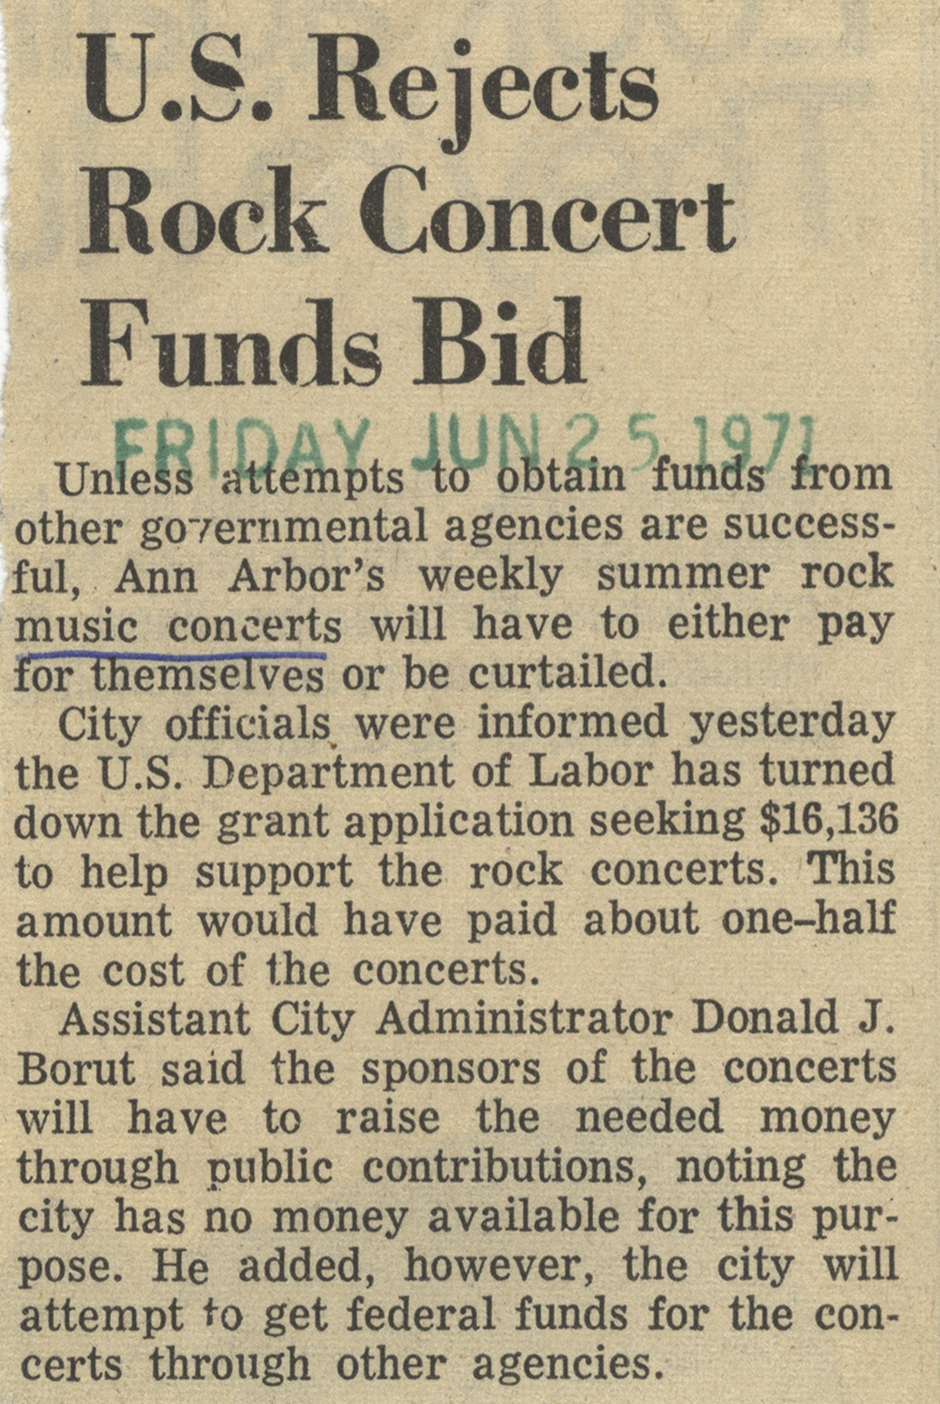 U.S. Rejects Rock Concert Funds Bid image